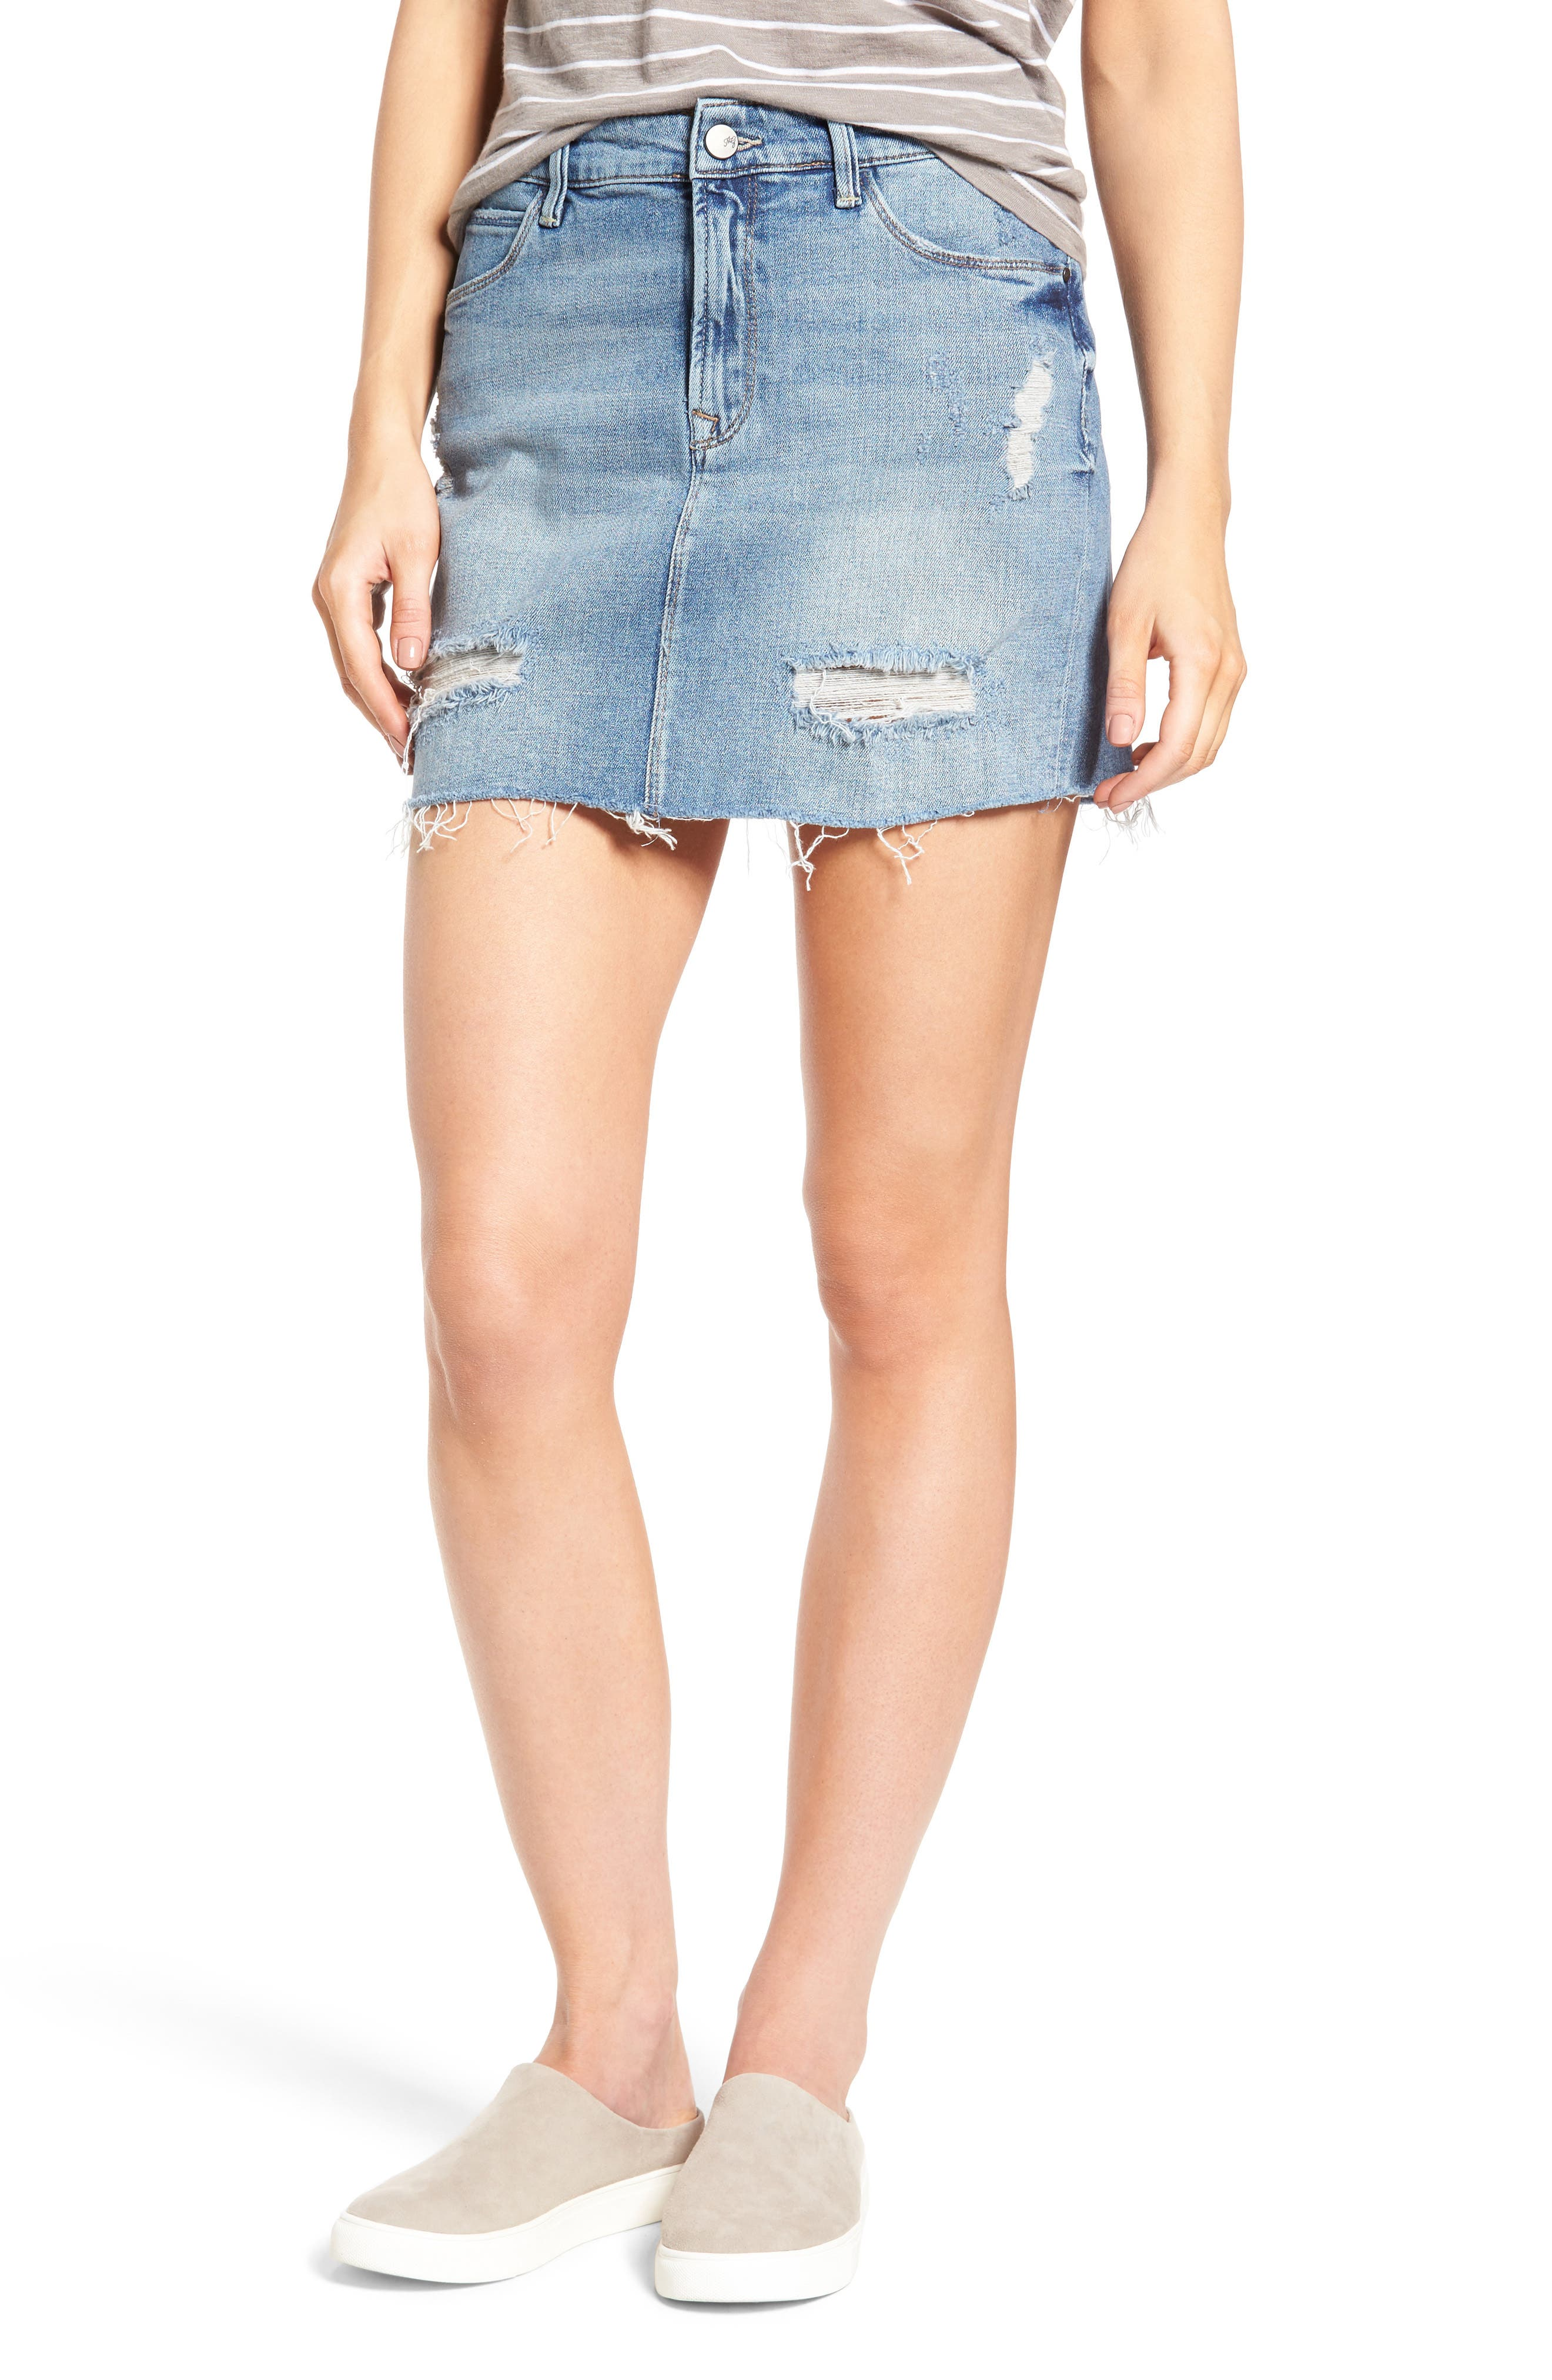 Blue Denim Skirts: A-Line, Pencil, Maxi, Miniskirts & More | Nordstrom